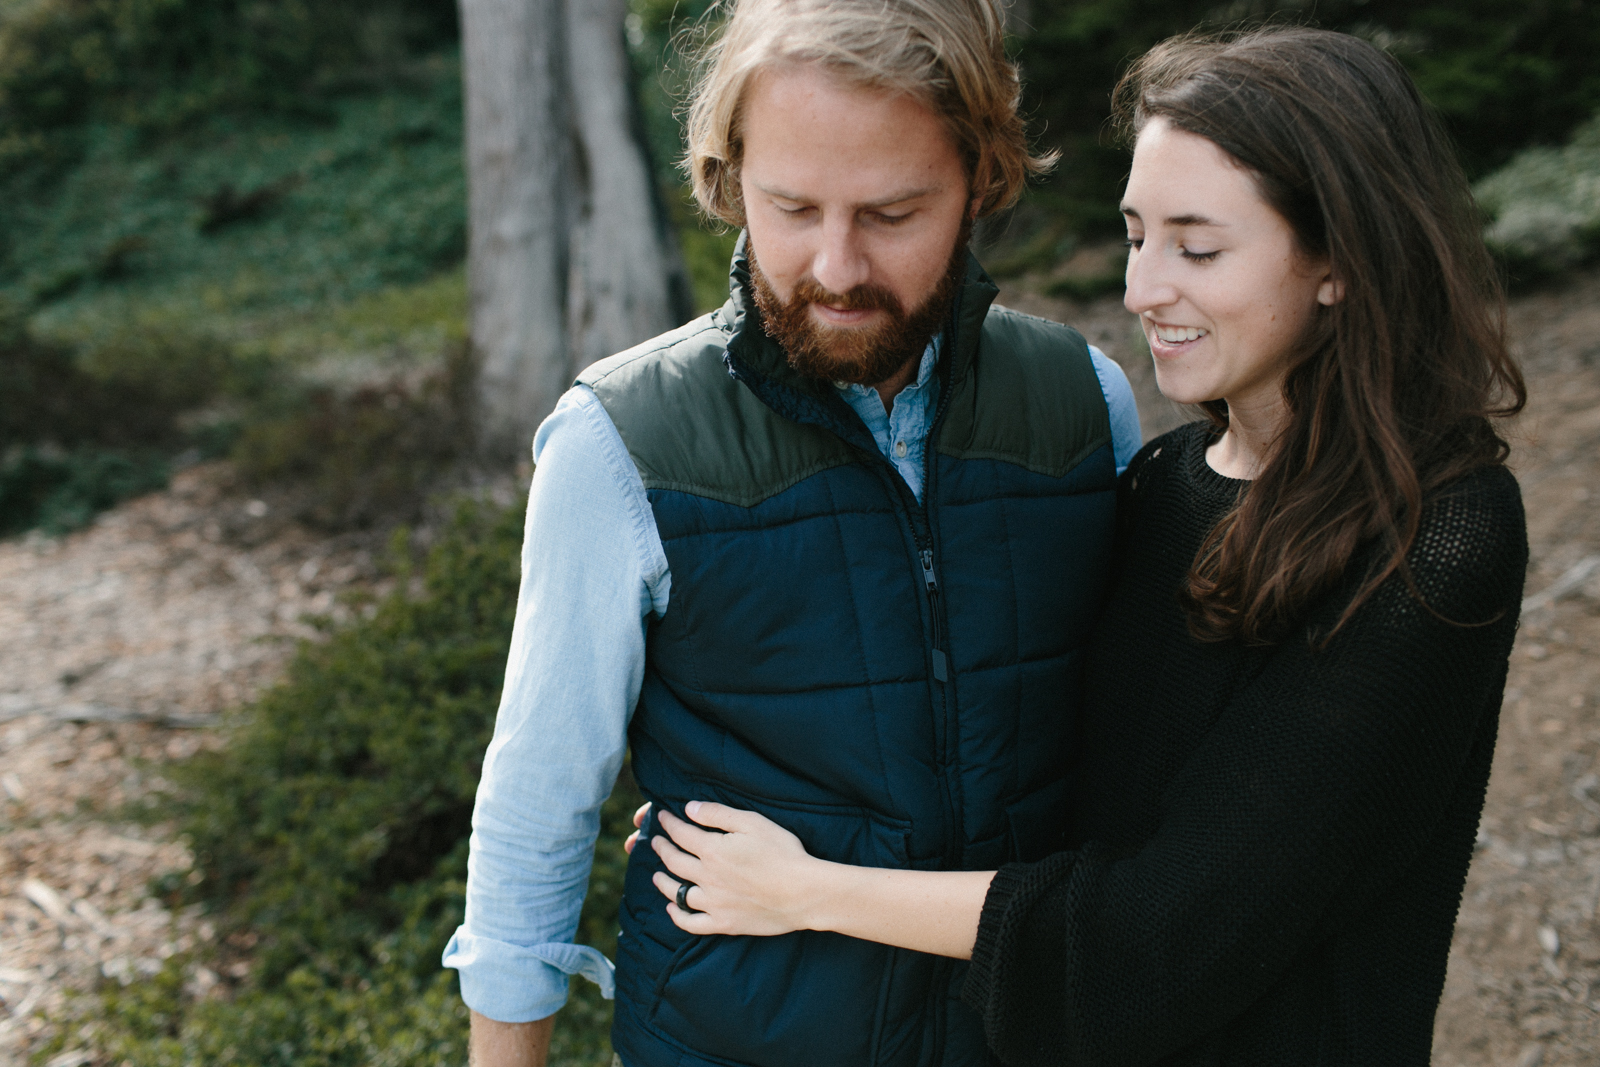 San Francisco Engagement Photography by Bay Area Wedding Photographer Mae Stier-019.jpg